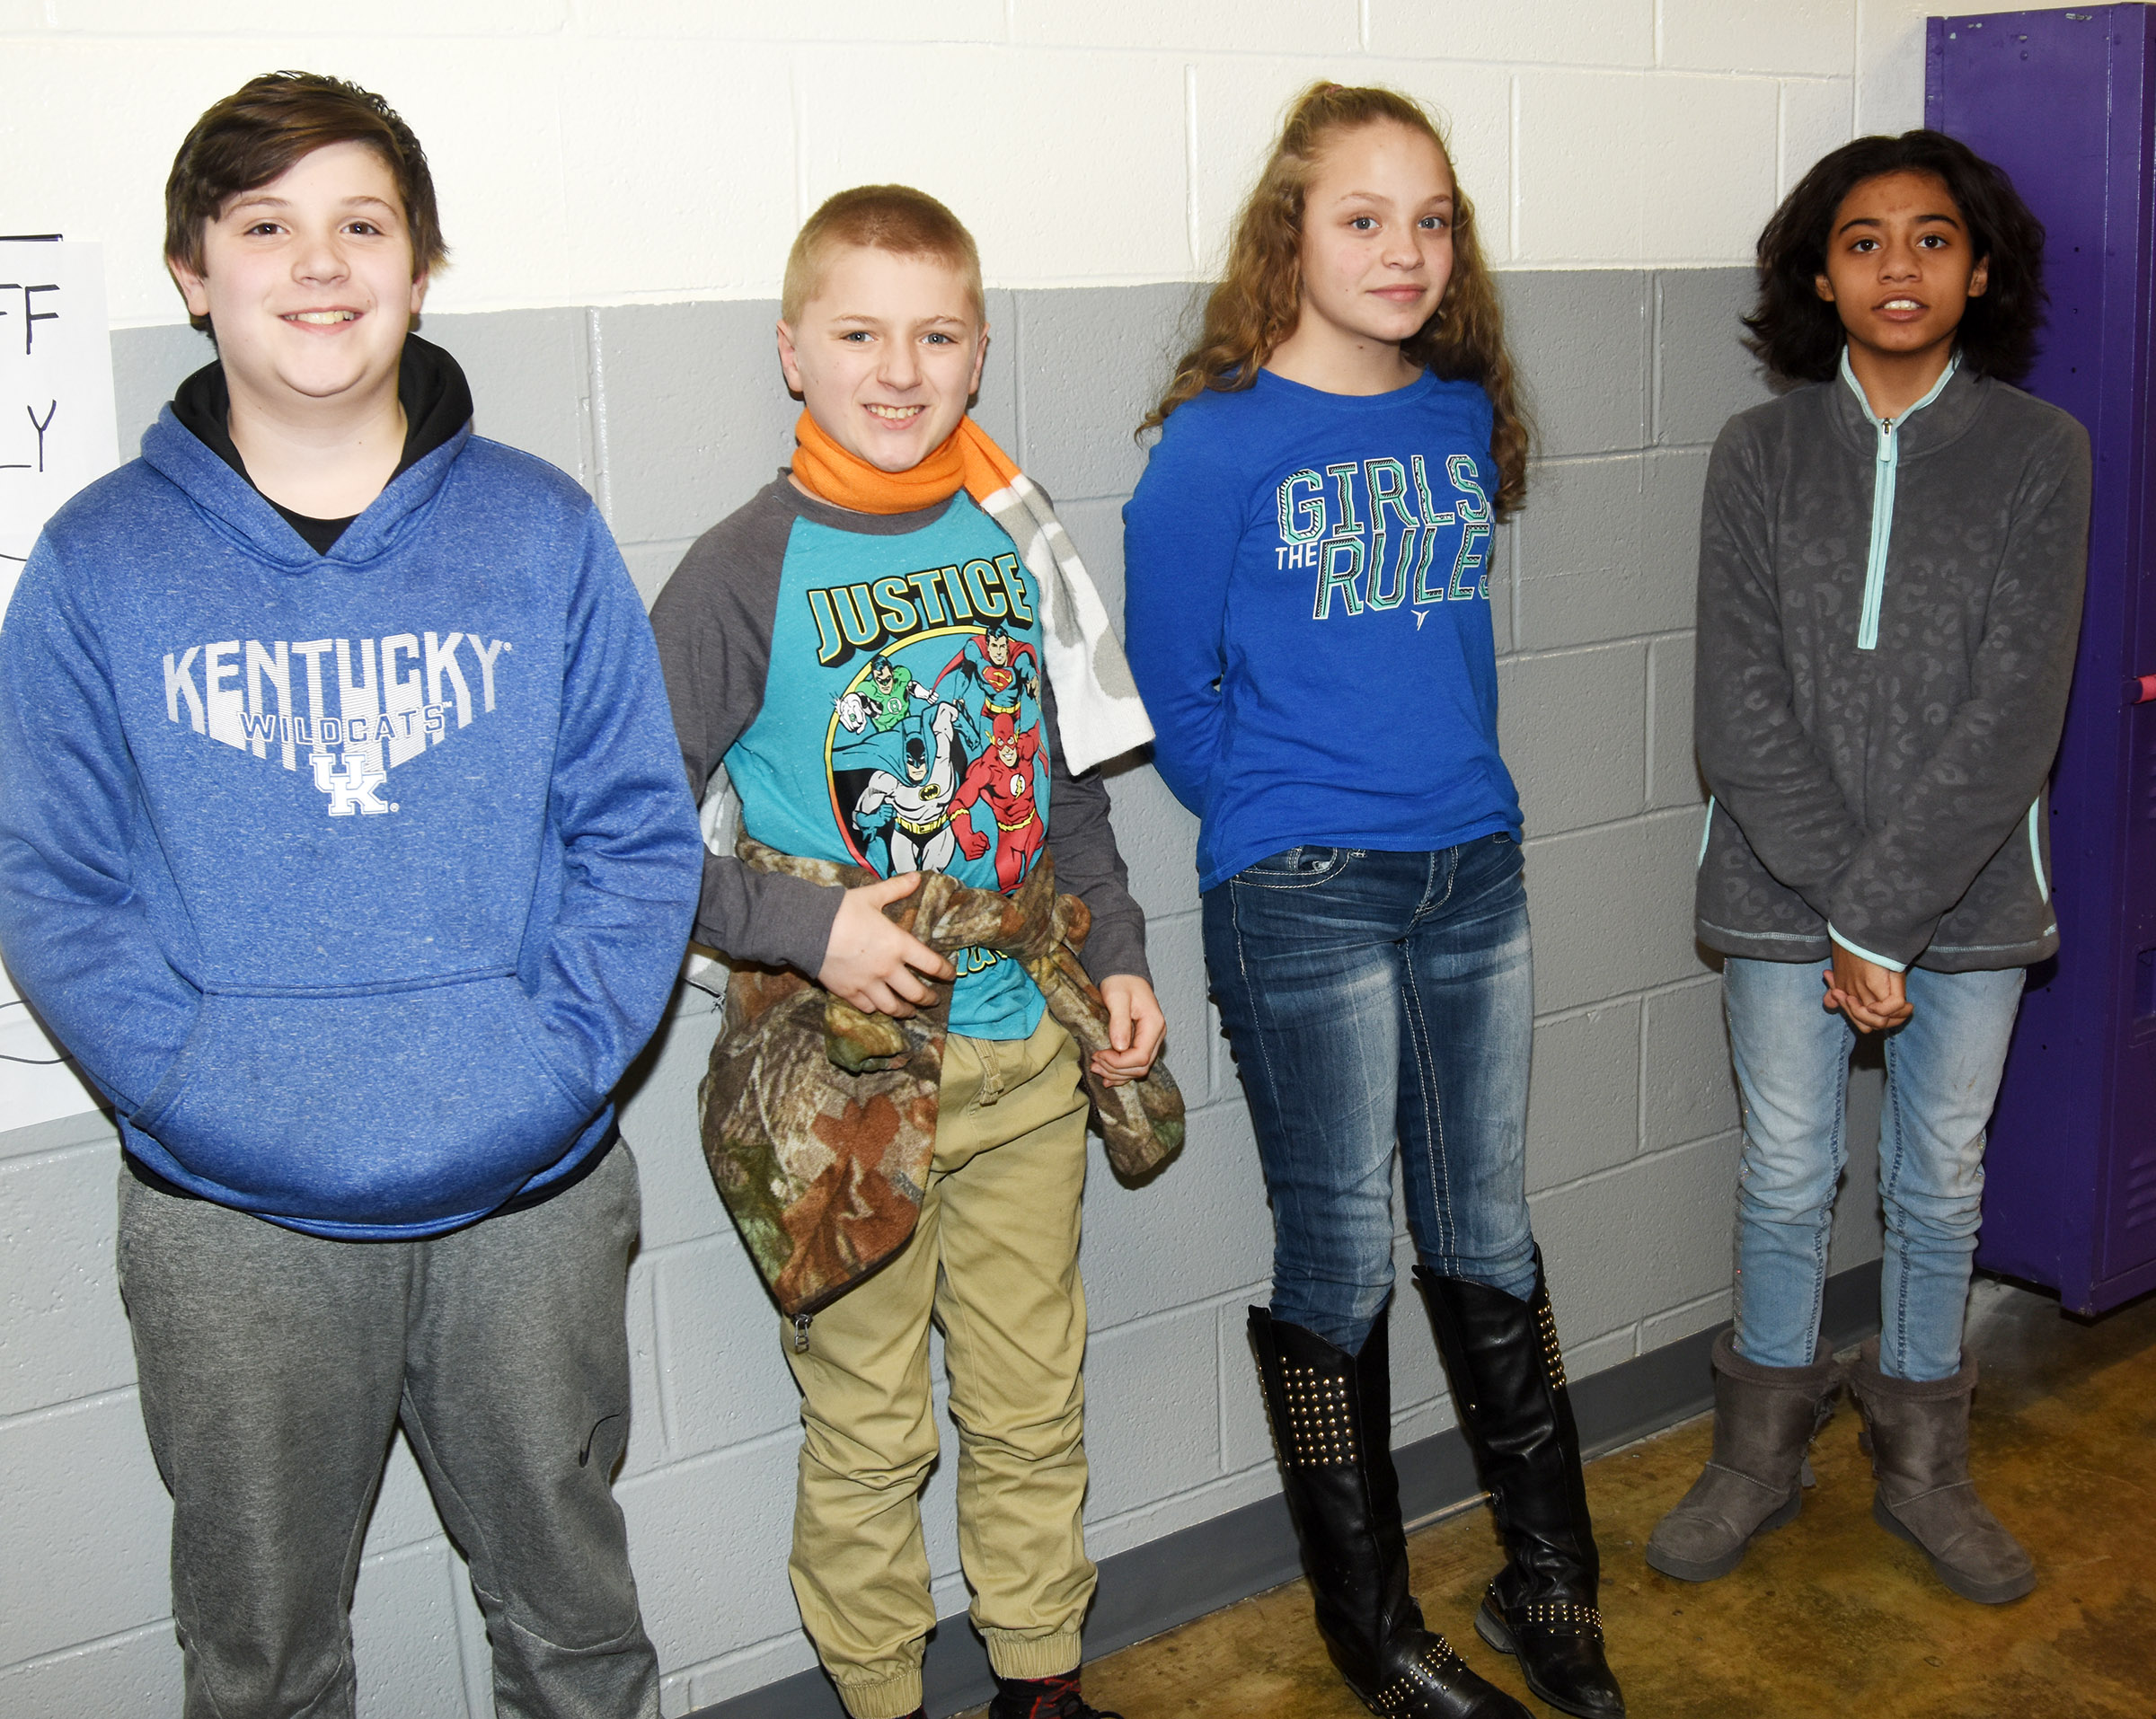 CES students and teachers wear blue and orange in support of Marshall County High School.